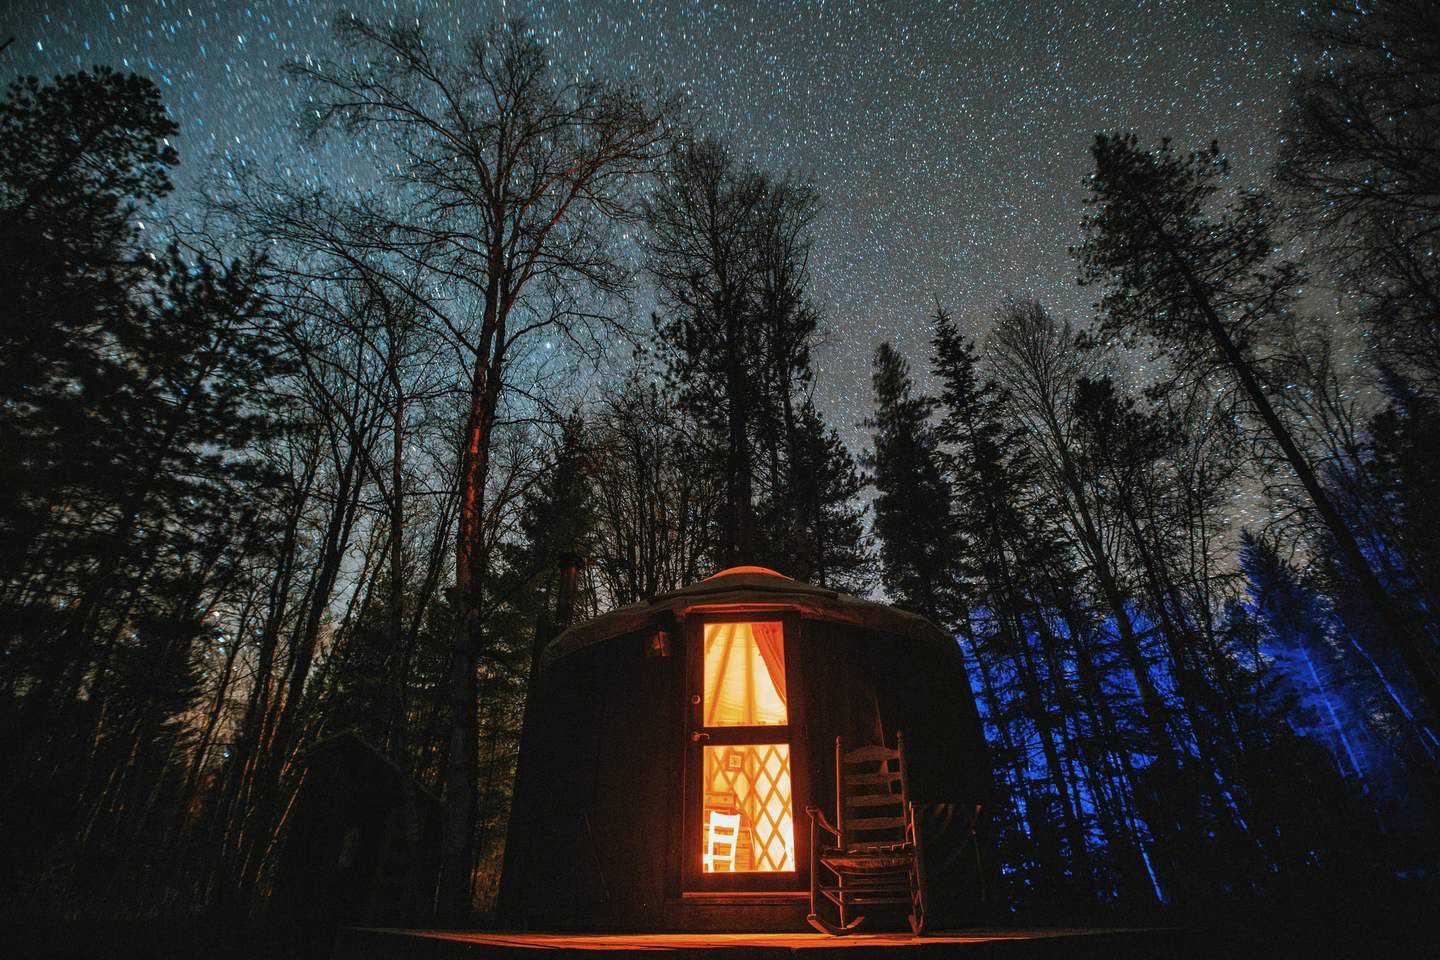 Luxury yurt rental near the Idaho Panhandle National Forest